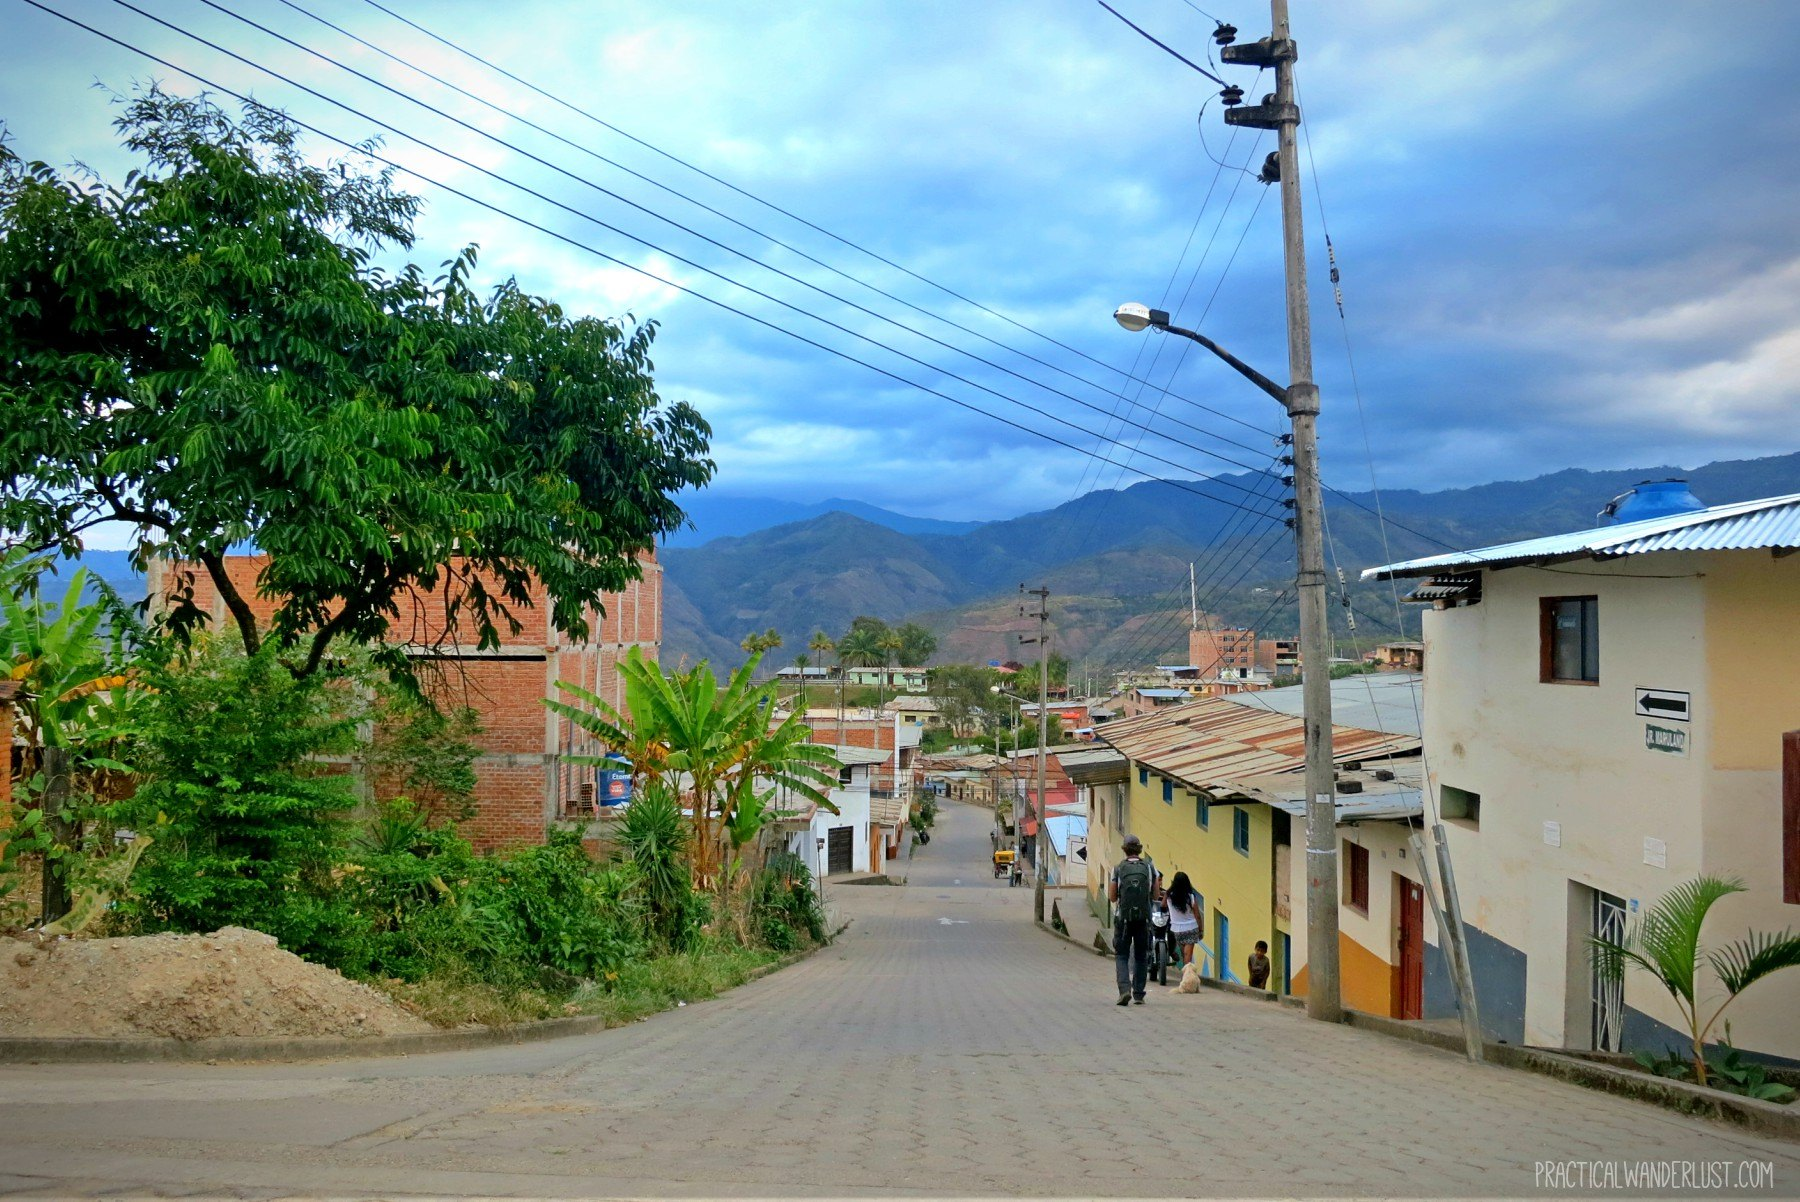 San Ignacio, Peru, part of the La Balsa Border Crossing from Ecuador.